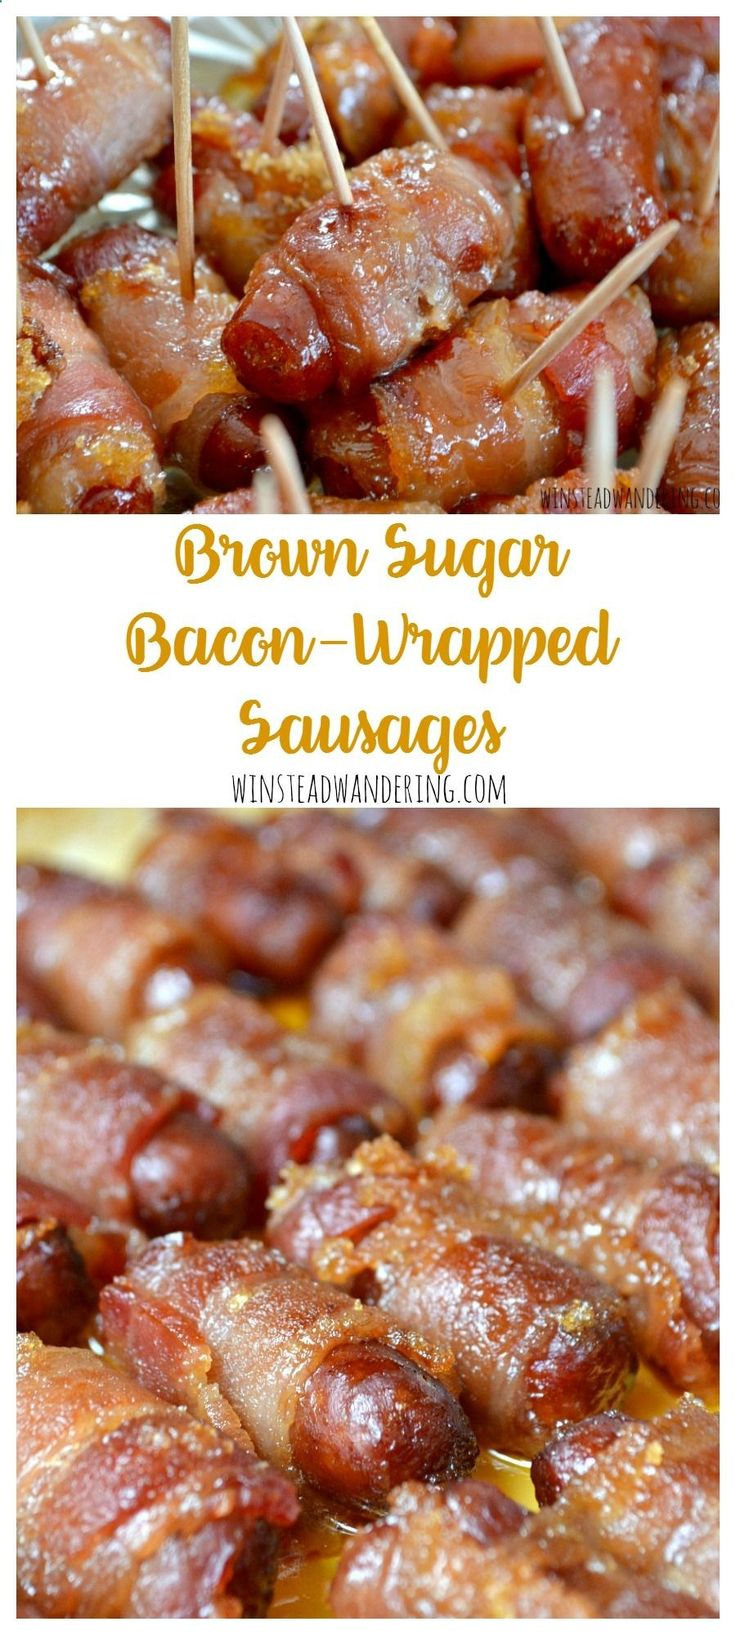 These brown sugar bacon-wrapped sausages are seriously like crack. Theyre sweet,…